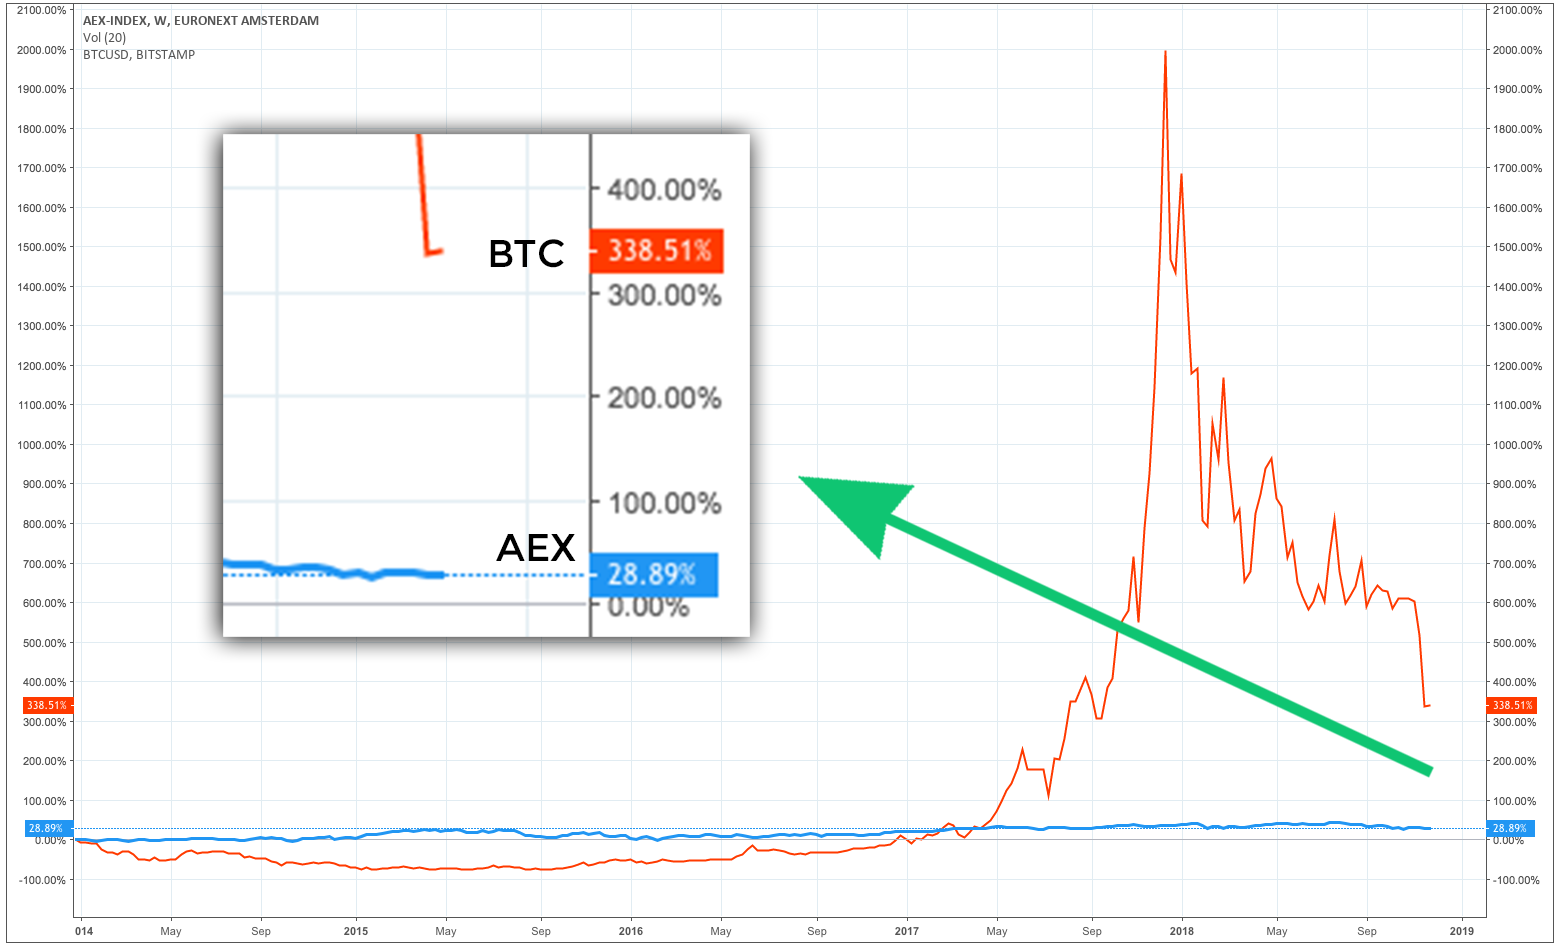 aex vs bitcoin 5 jaar rendement